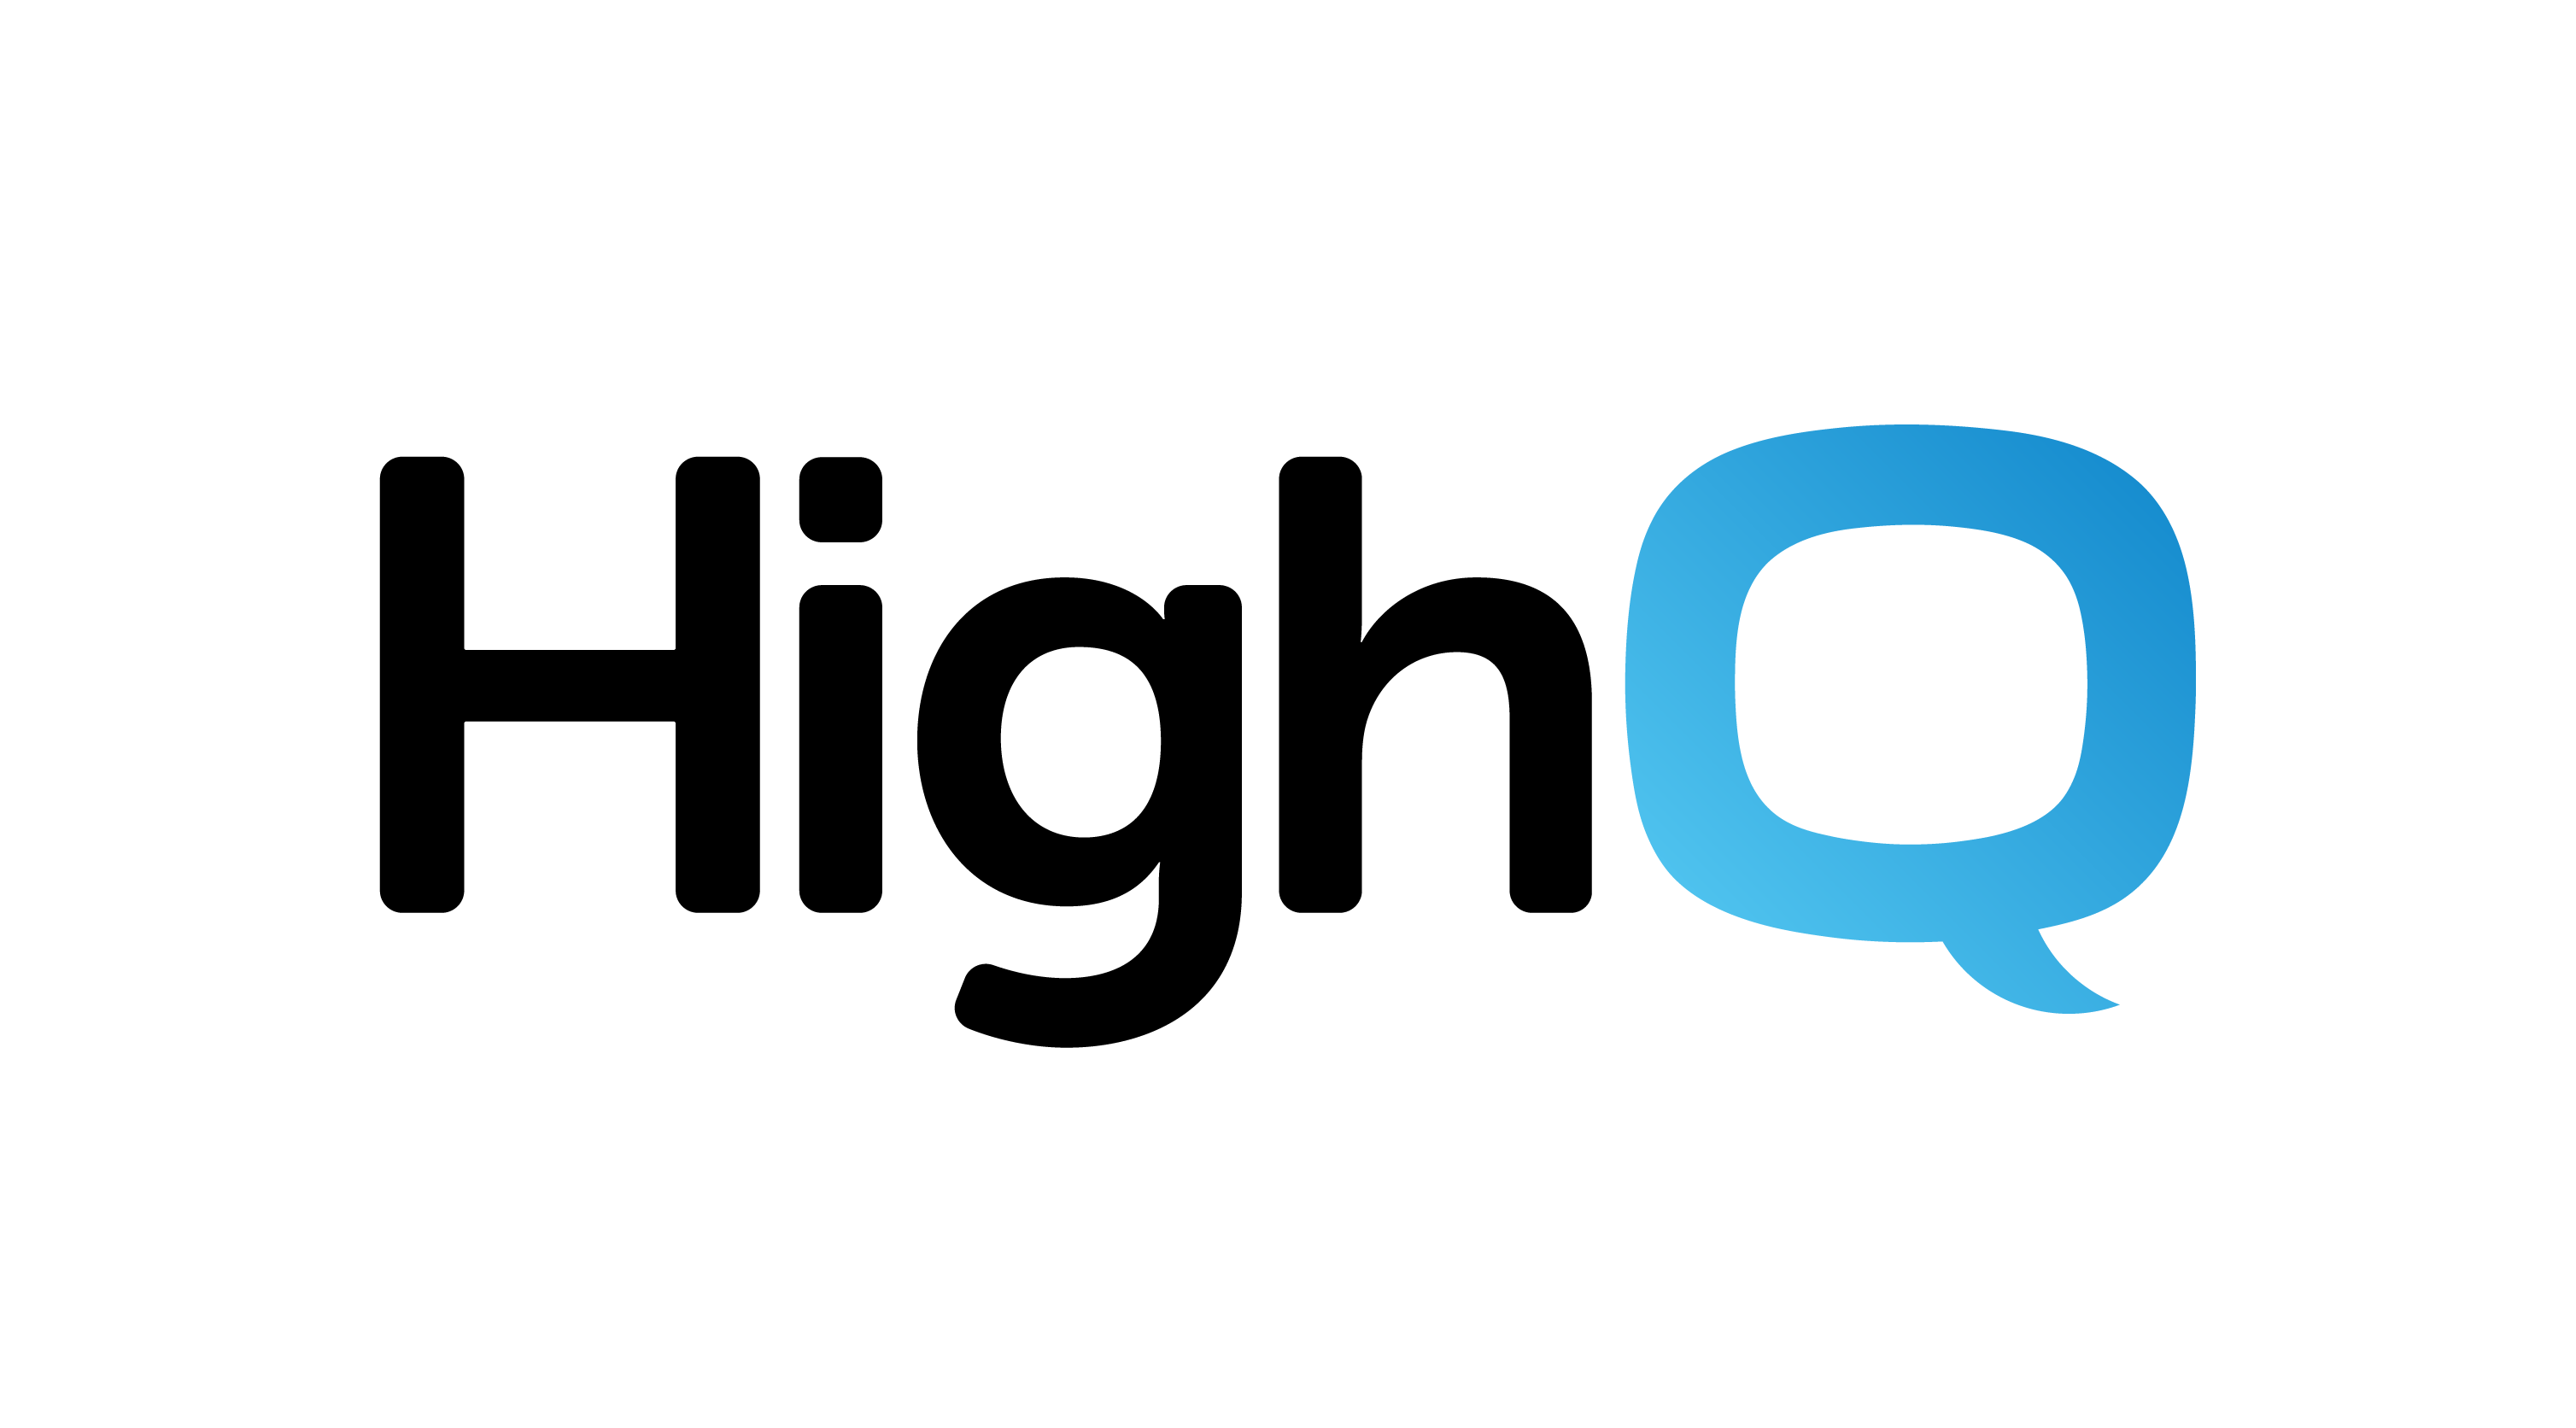 HighQ Inc